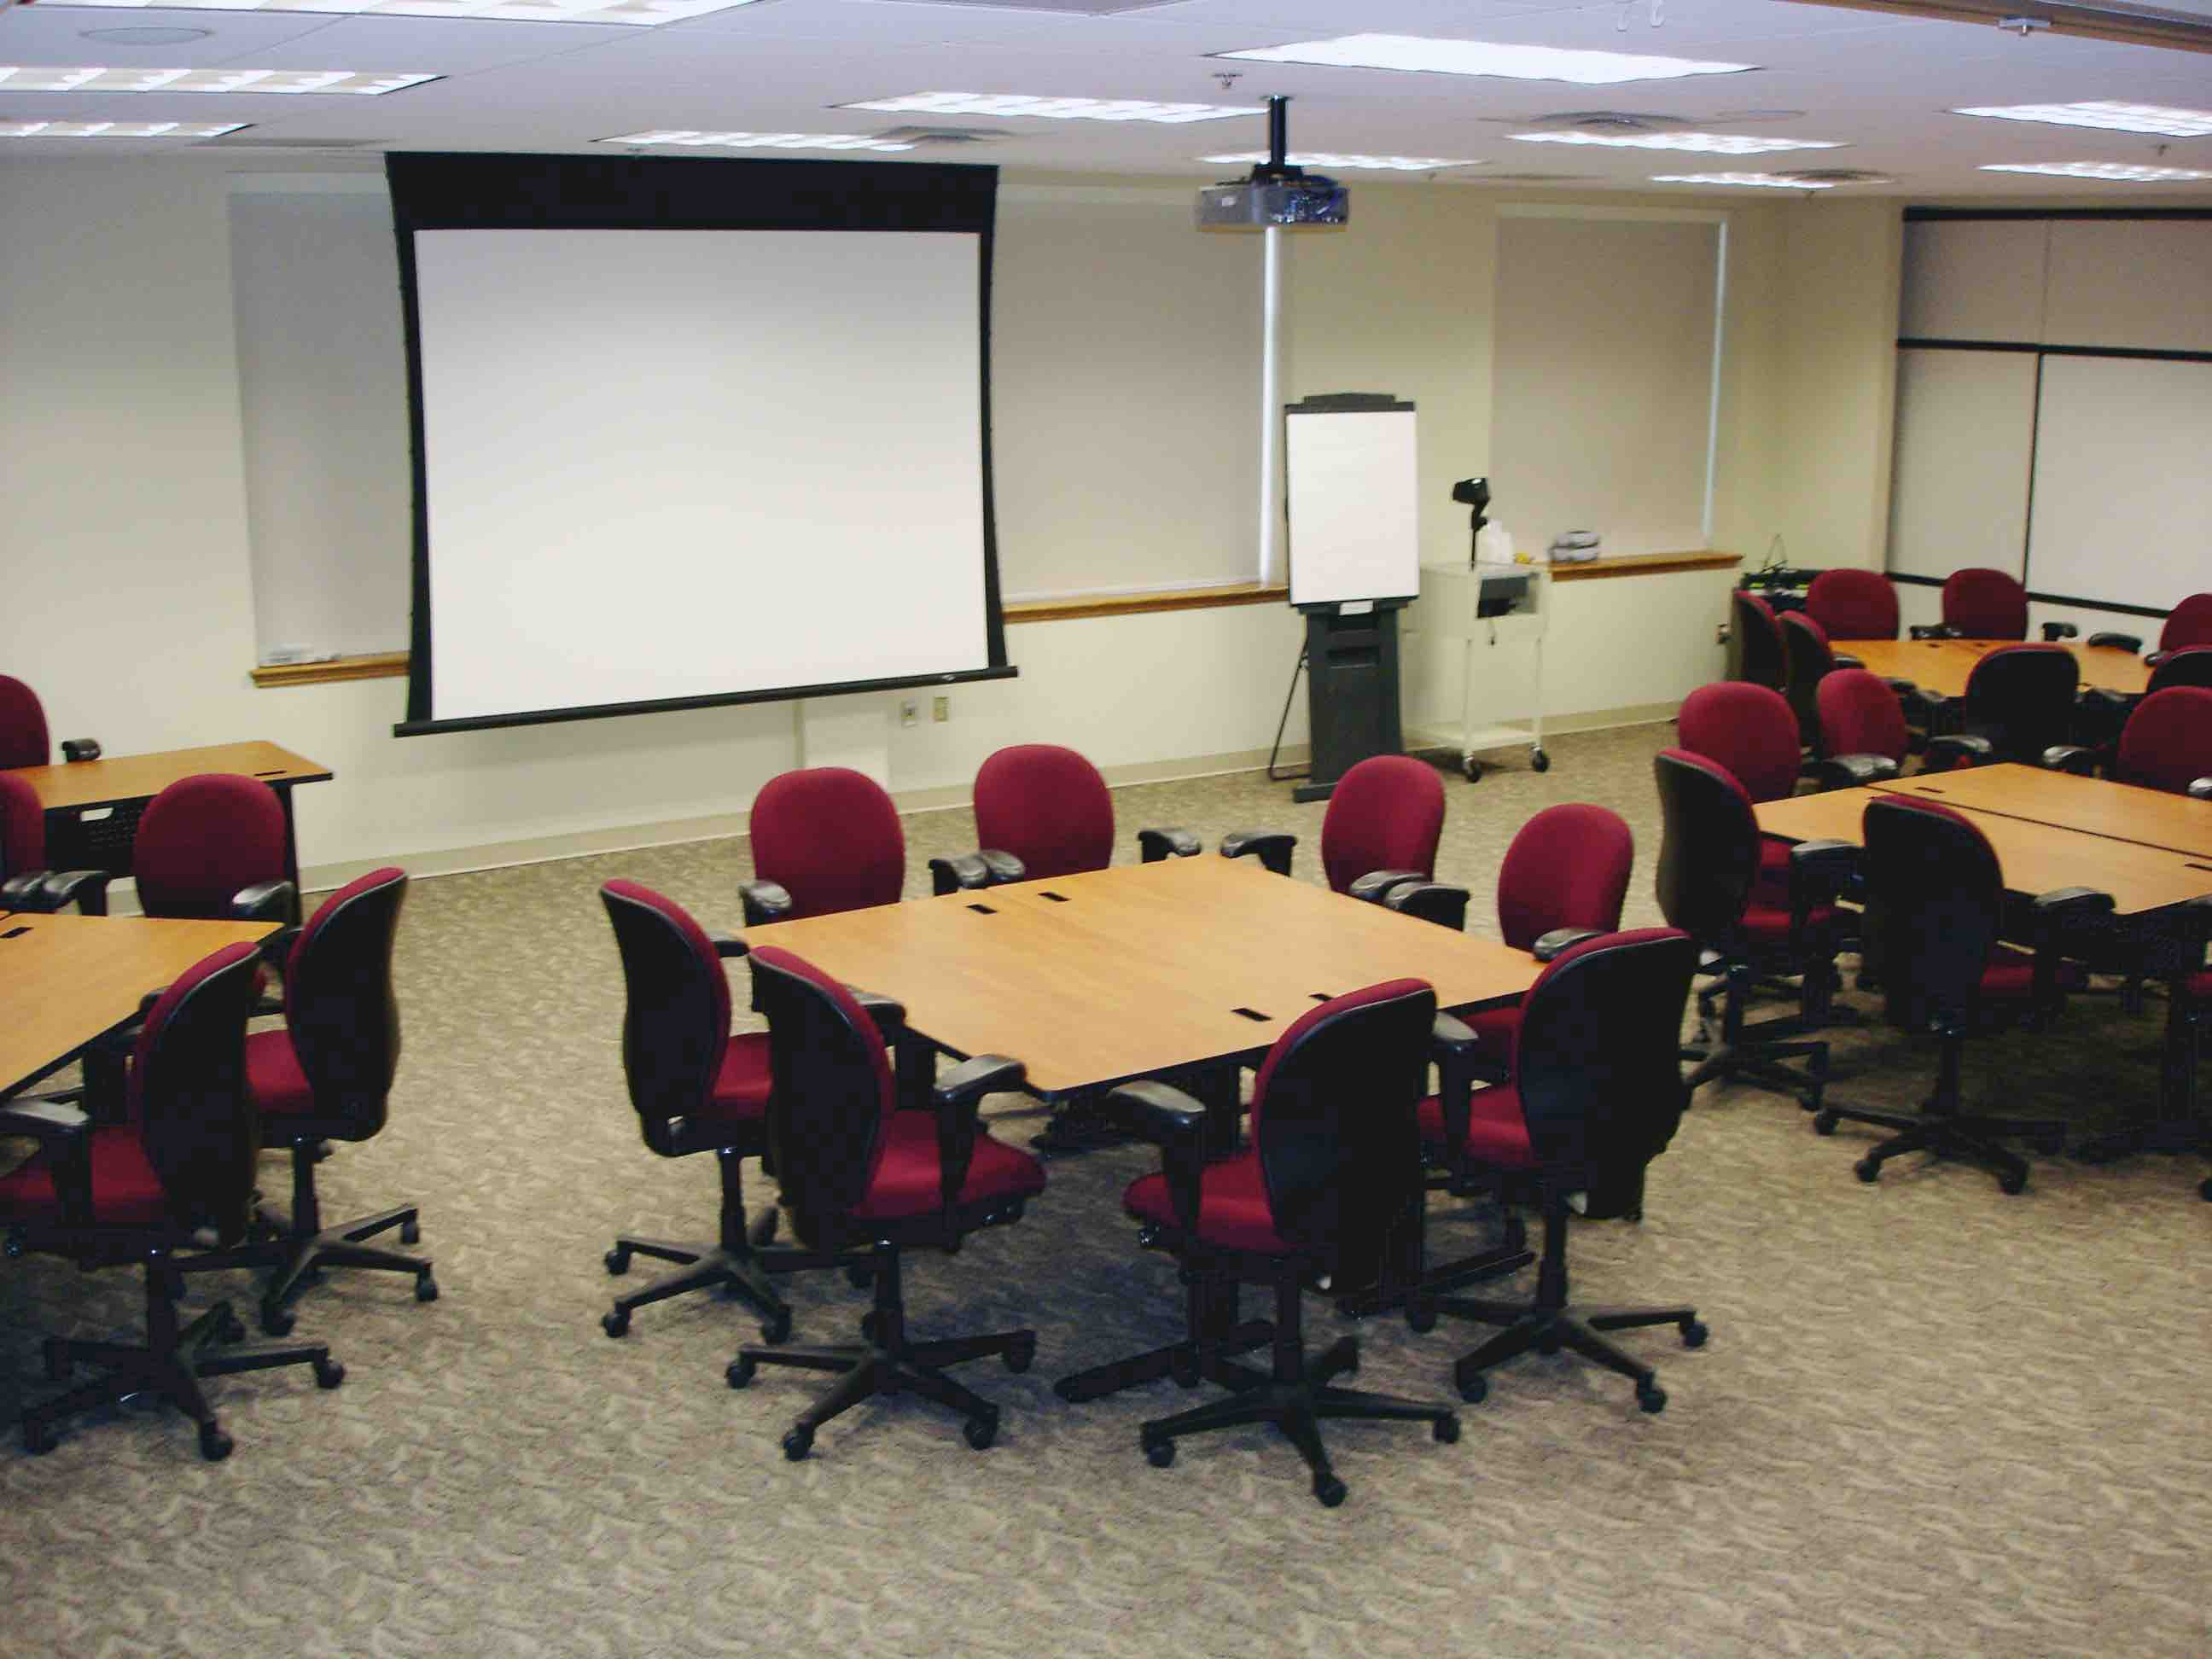 Meeting Room Set Up in Tables